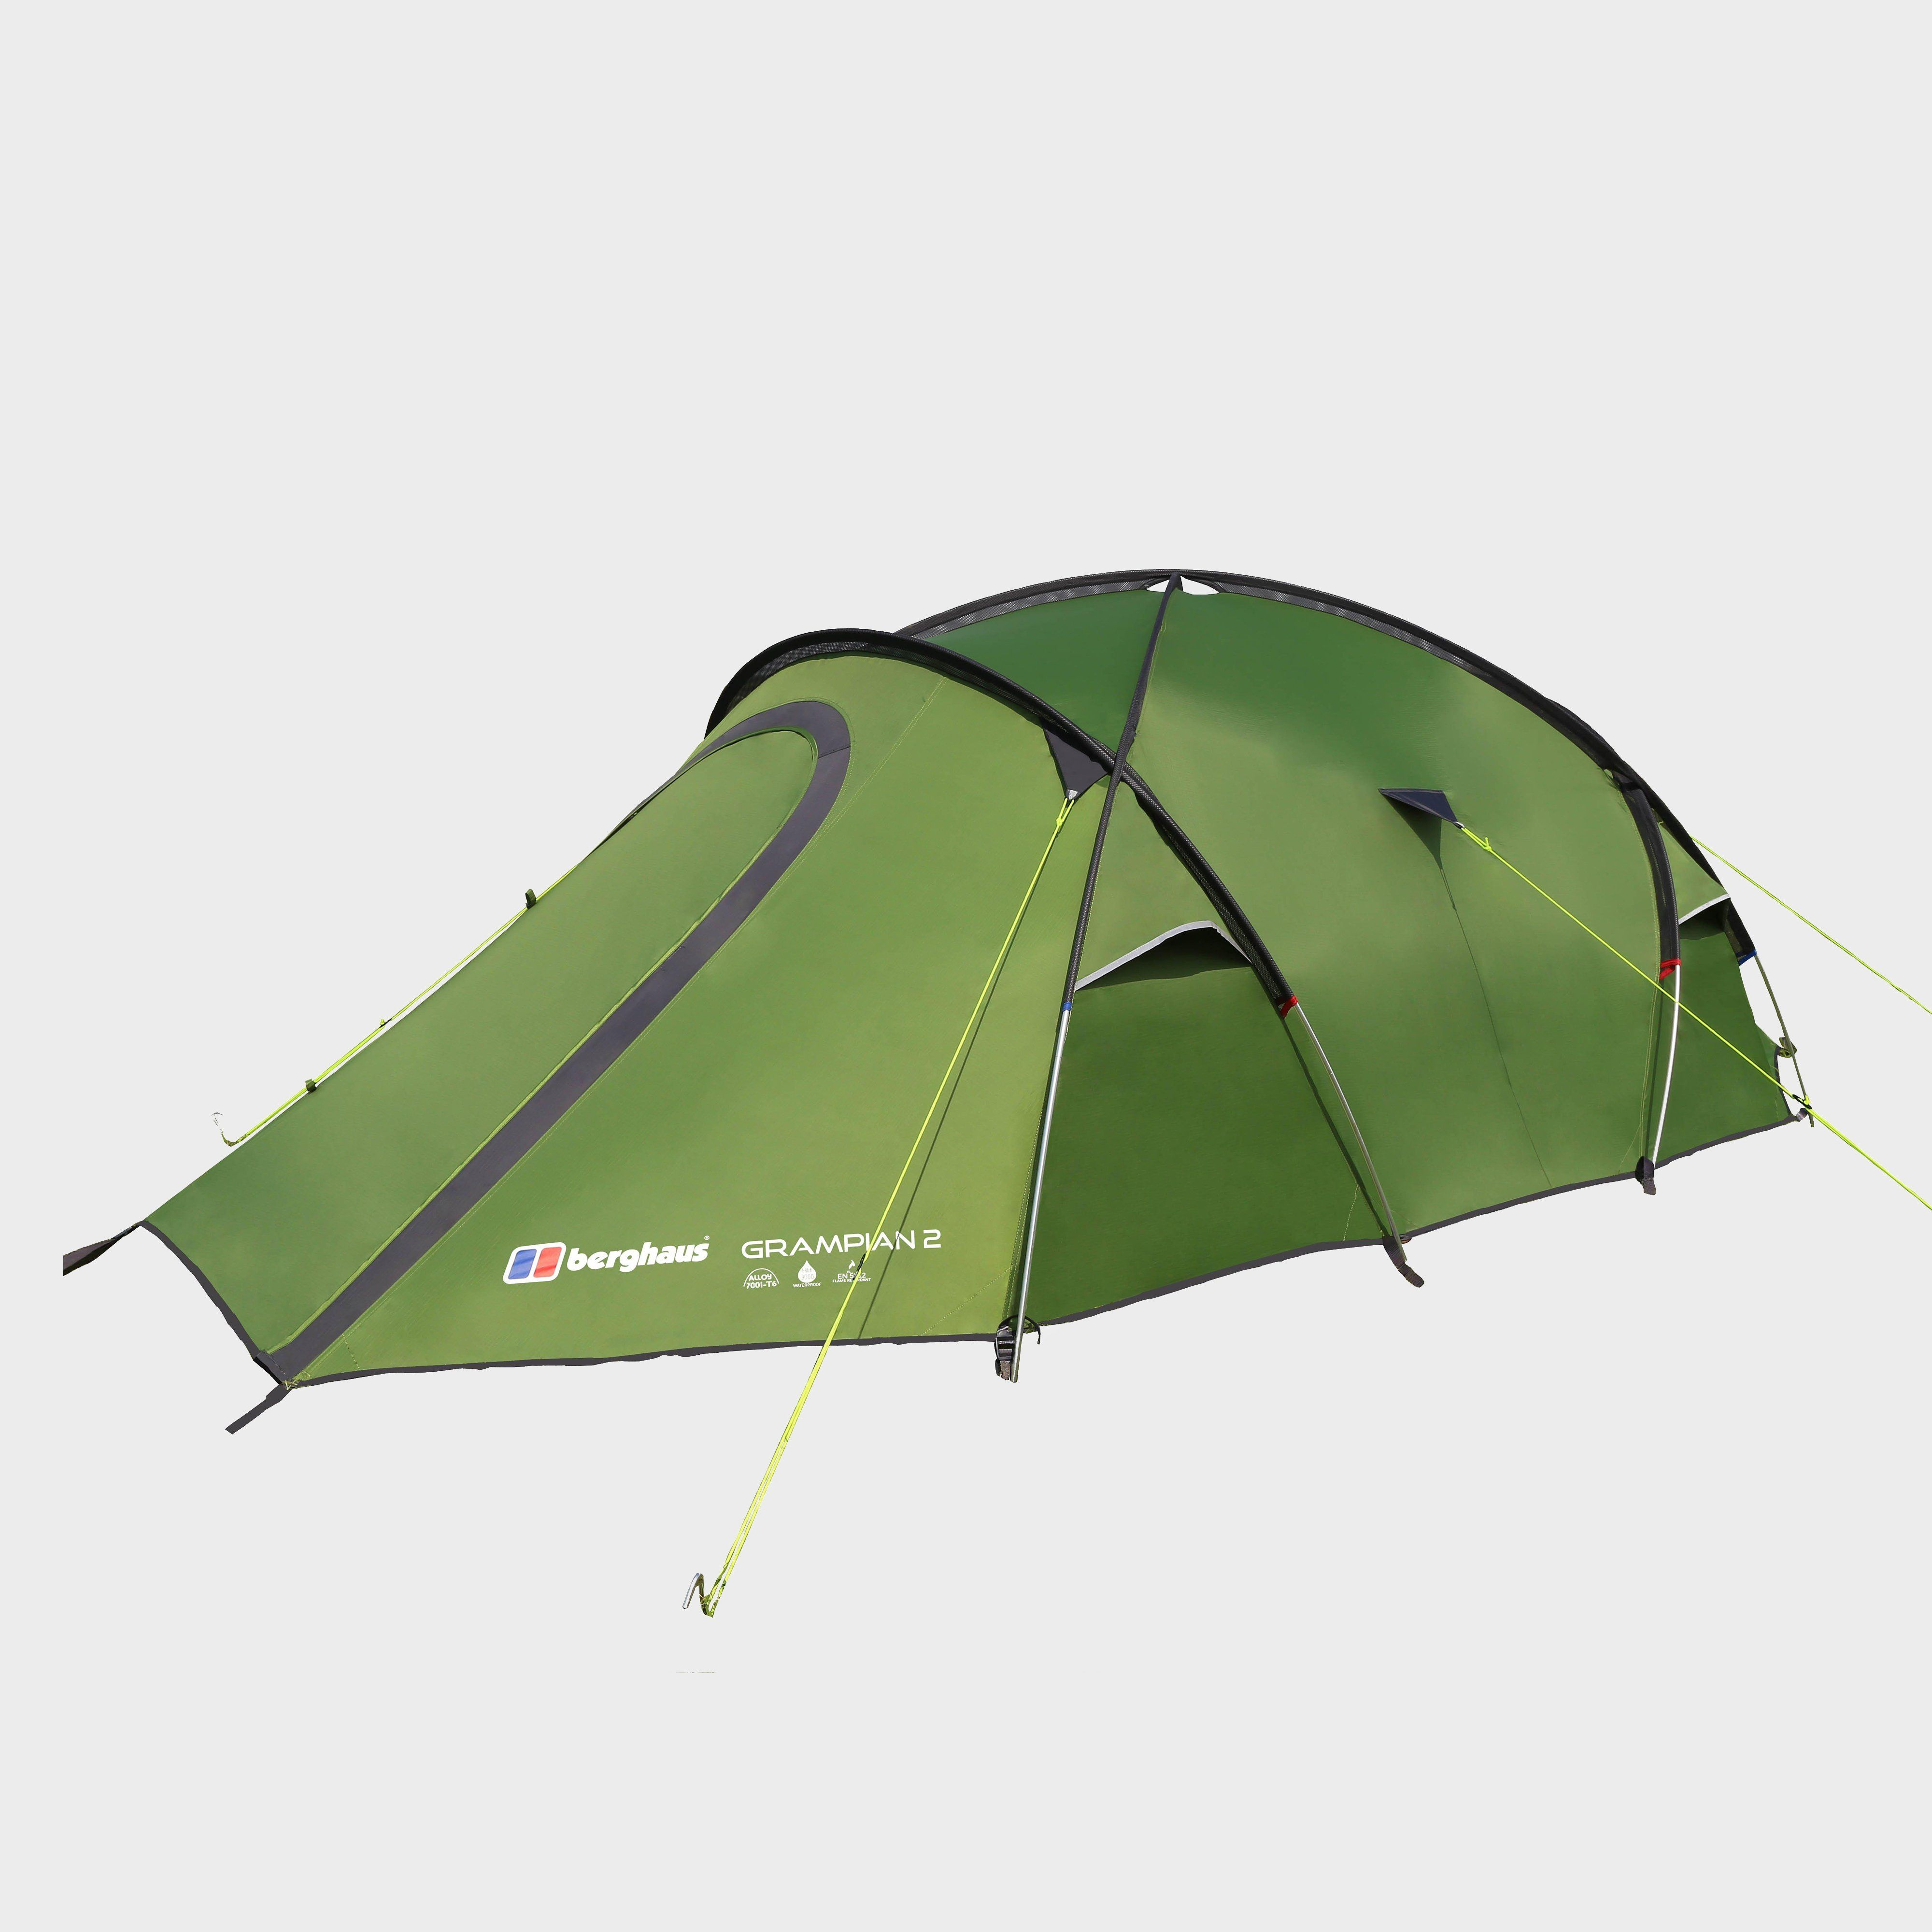 BERGHAUS Grampian 2 Person Tent